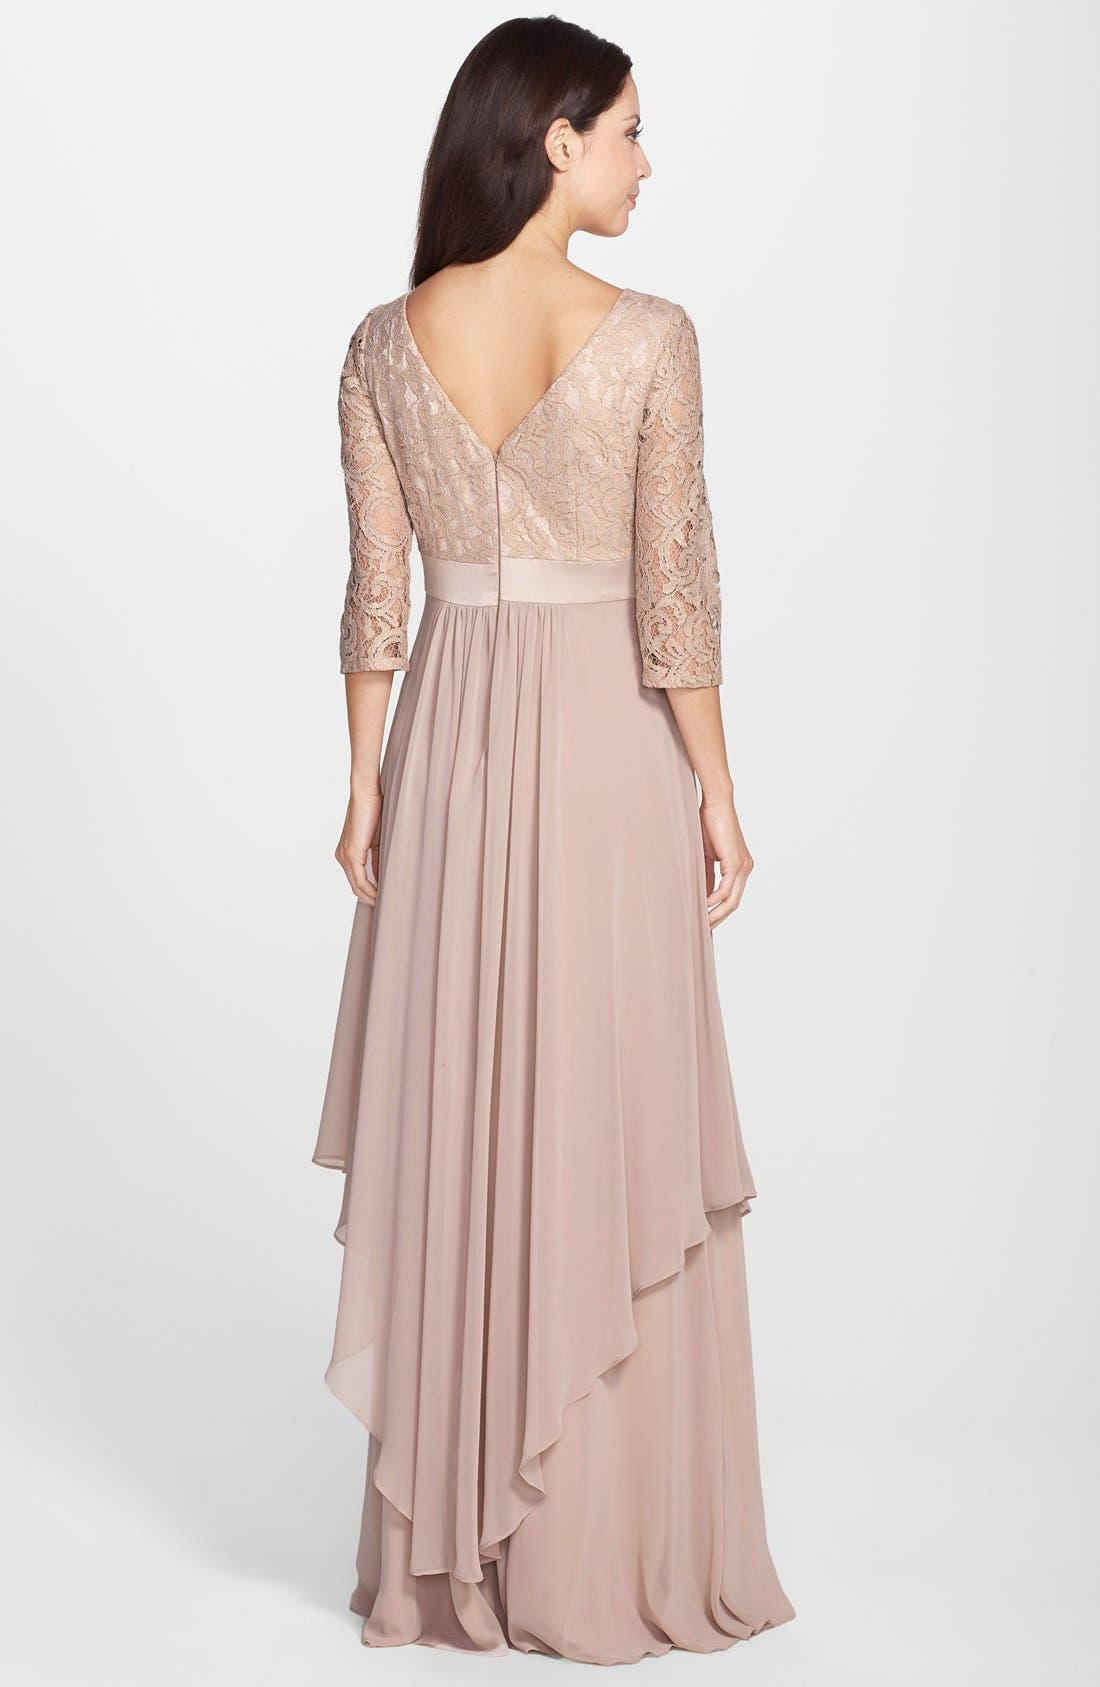 Embellished Lace & Chiffon Gown,                             Alternate thumbnail 9, color,                             256